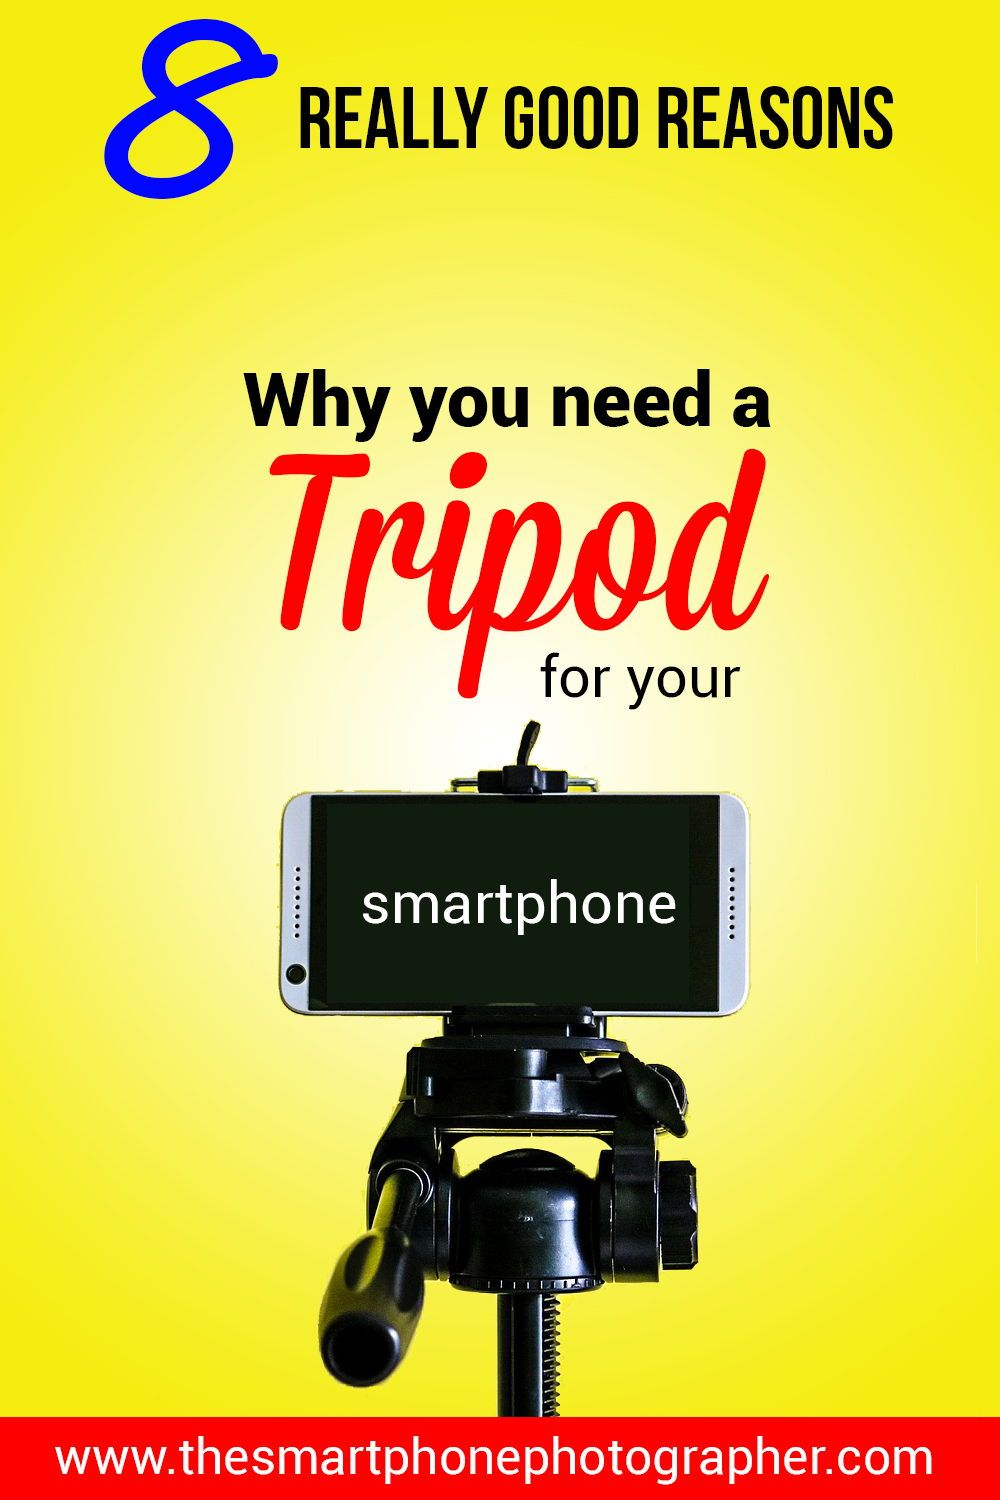 8 Reasons Why You Should Get A Tripod For Your Smartphone